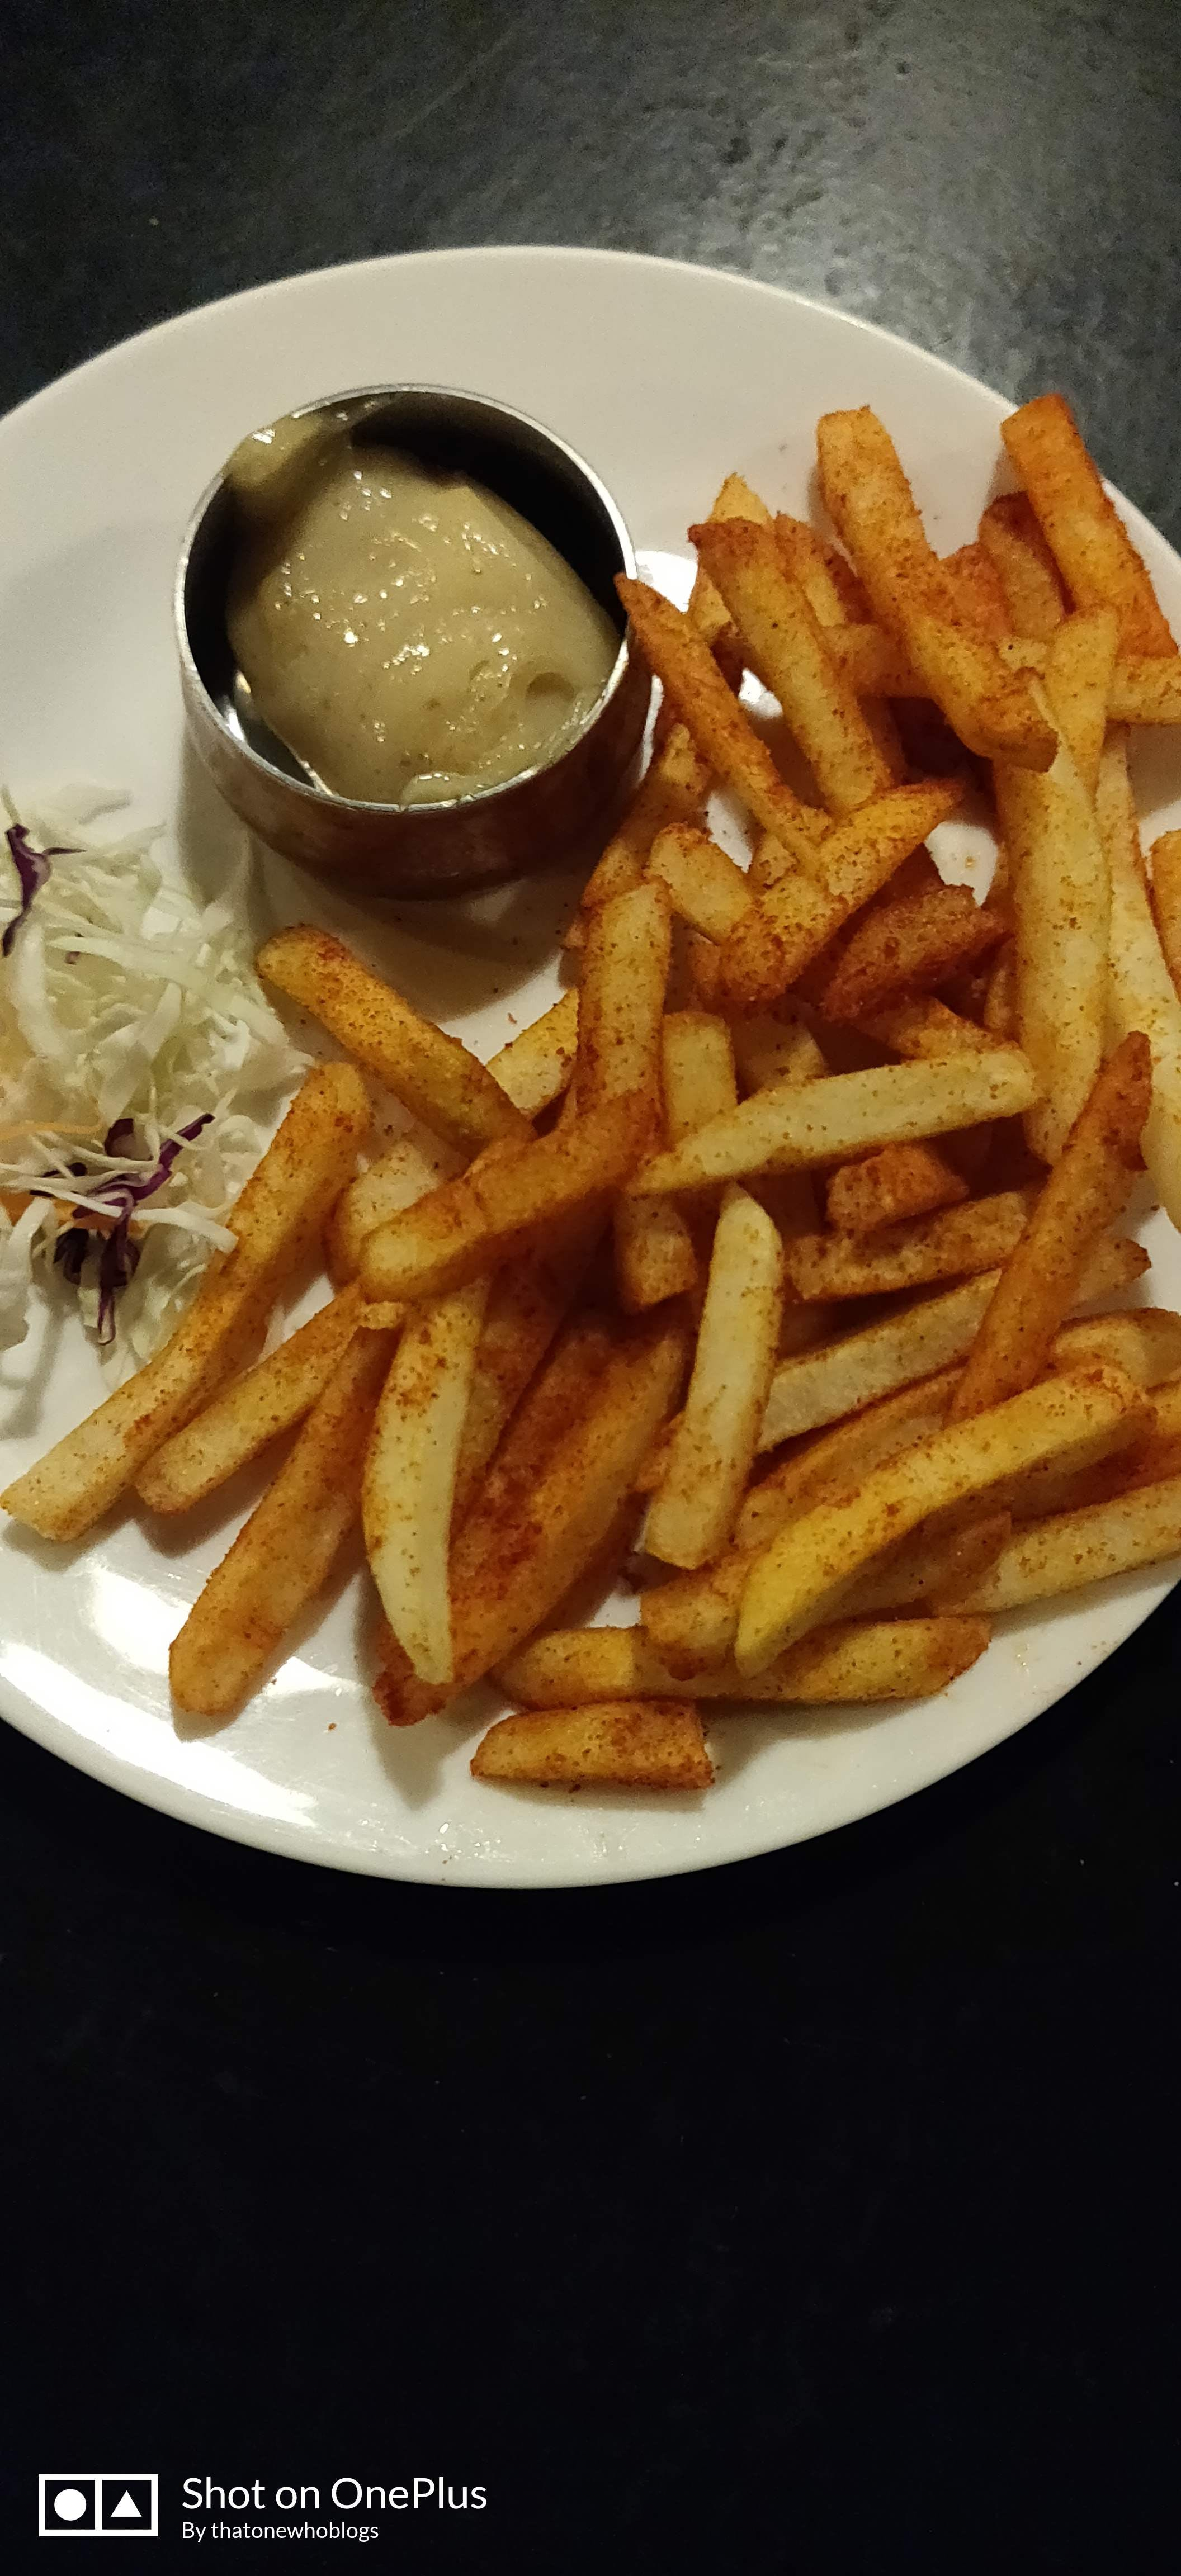 Dish,Food,Cuisine,French fries,Fried food,Junk food,Deep frying,Fast food,Side dish,Ingredient